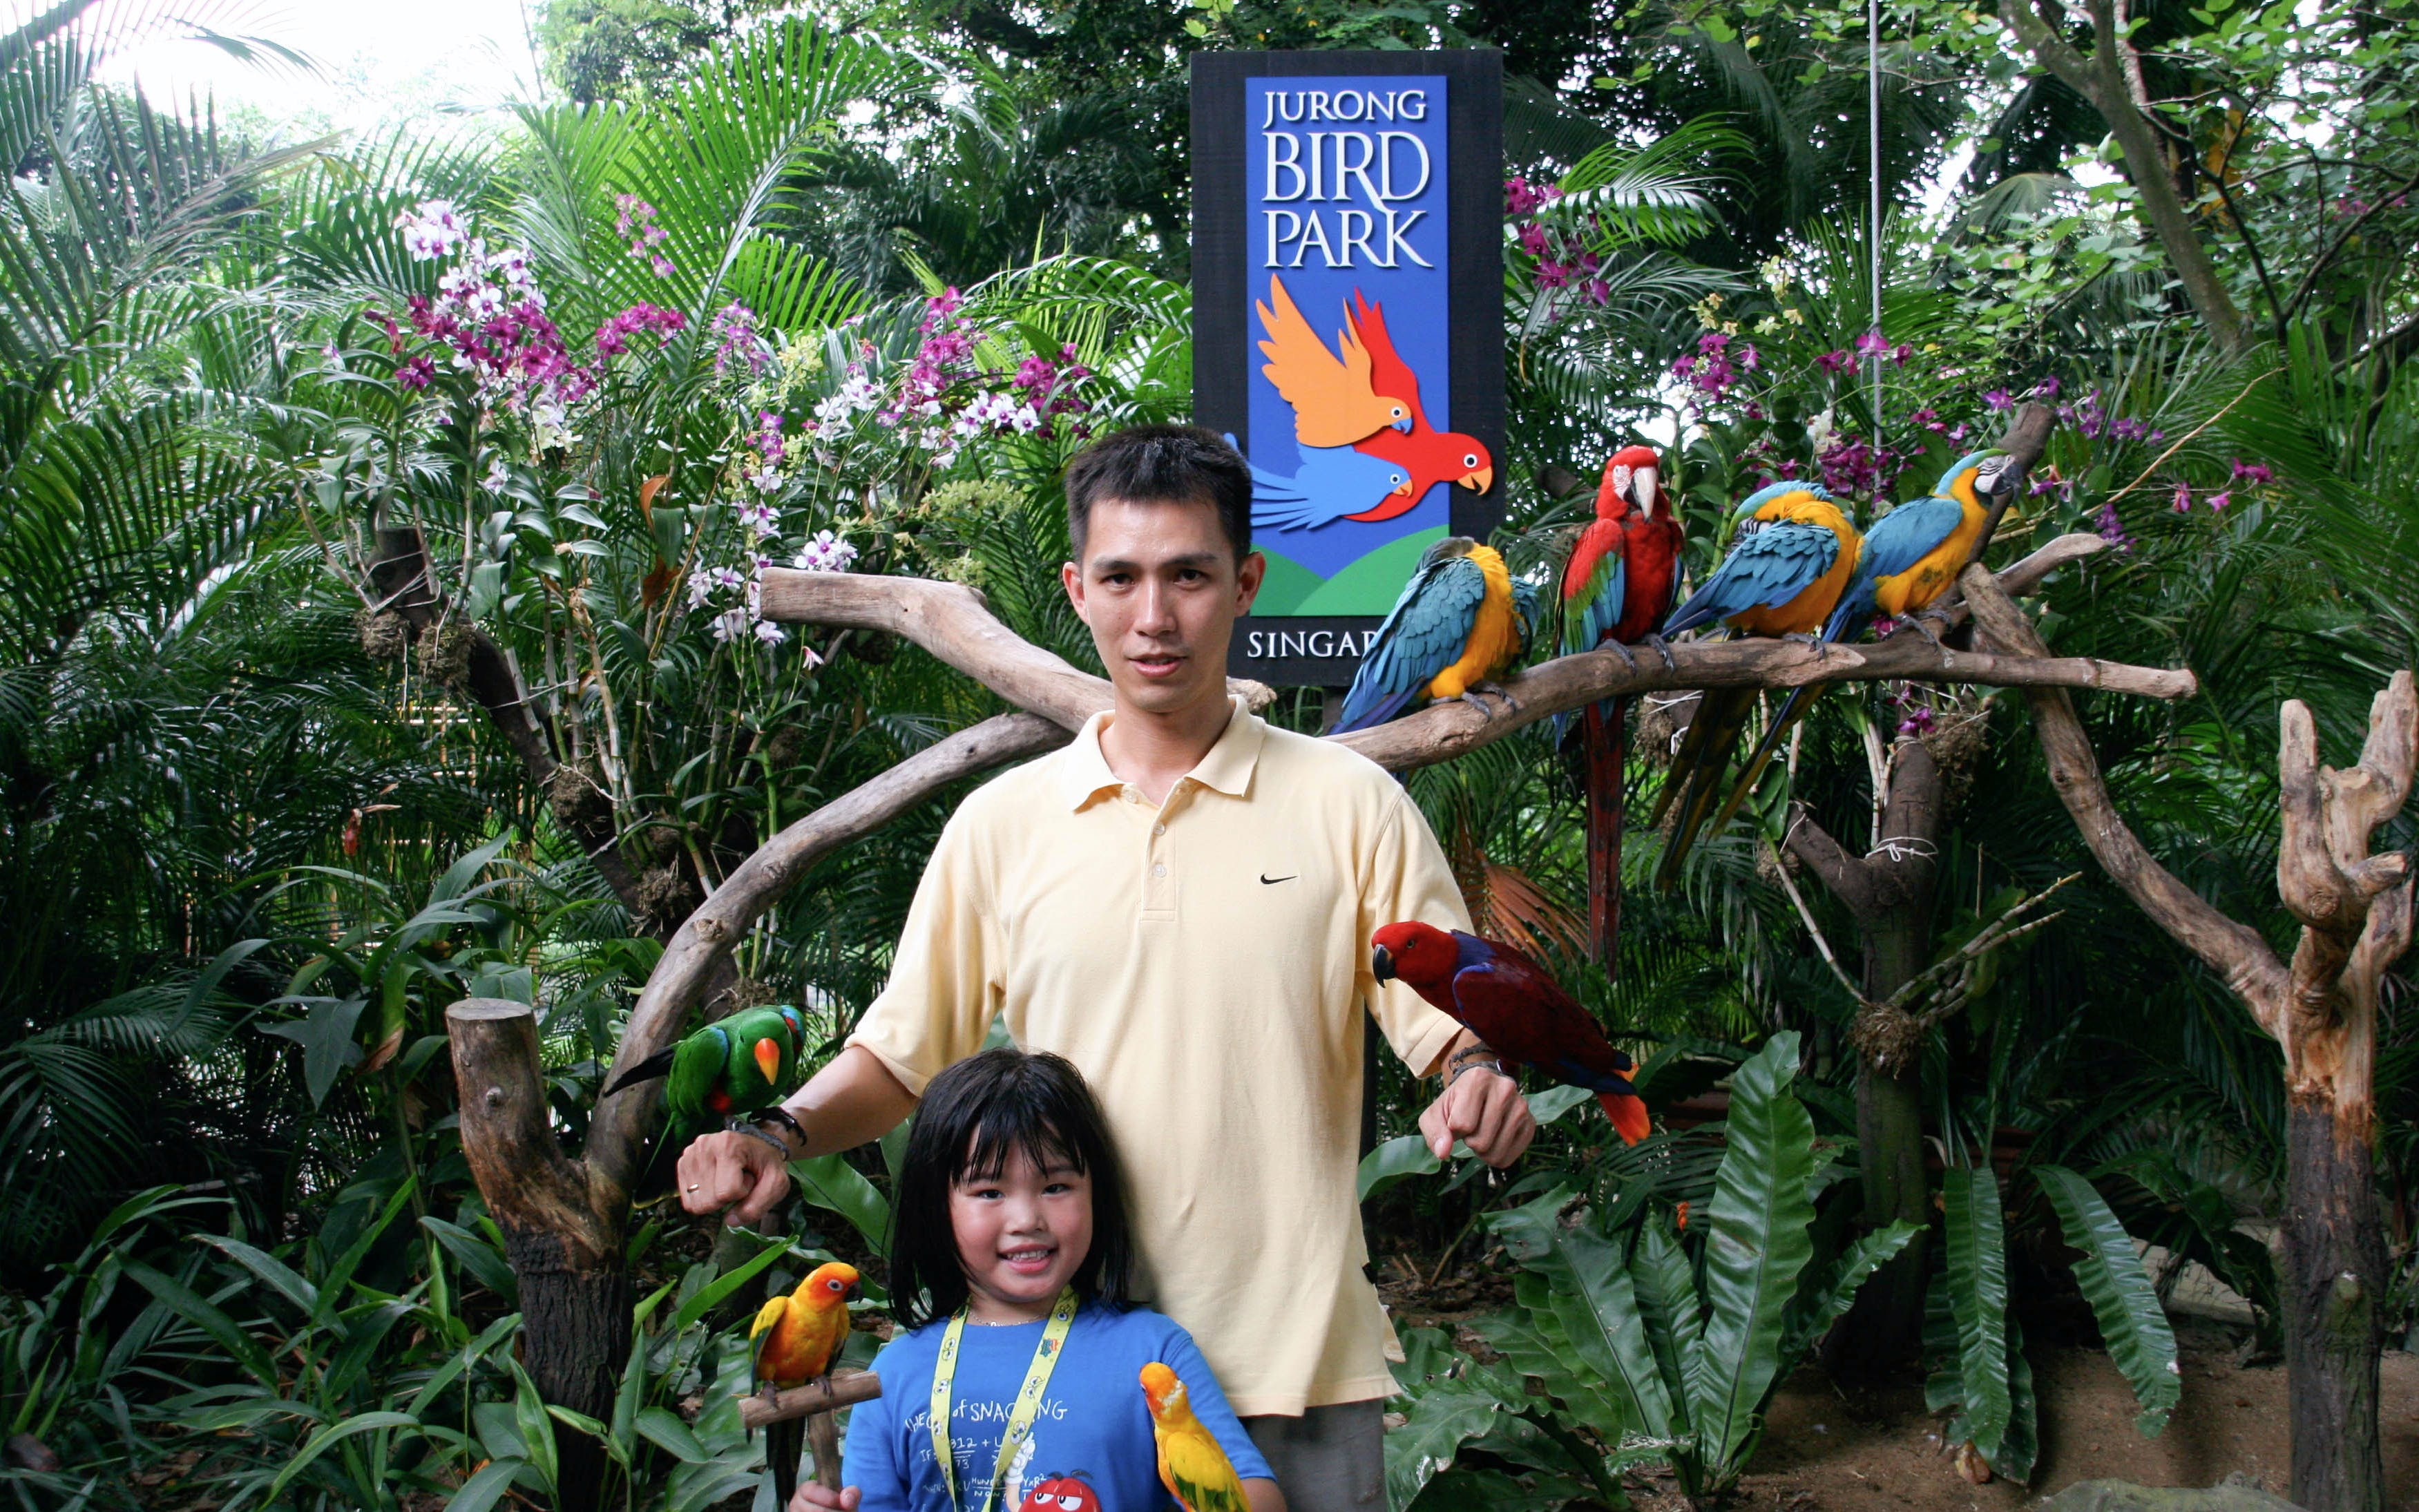 jurong bird park tickets with tram ride-4